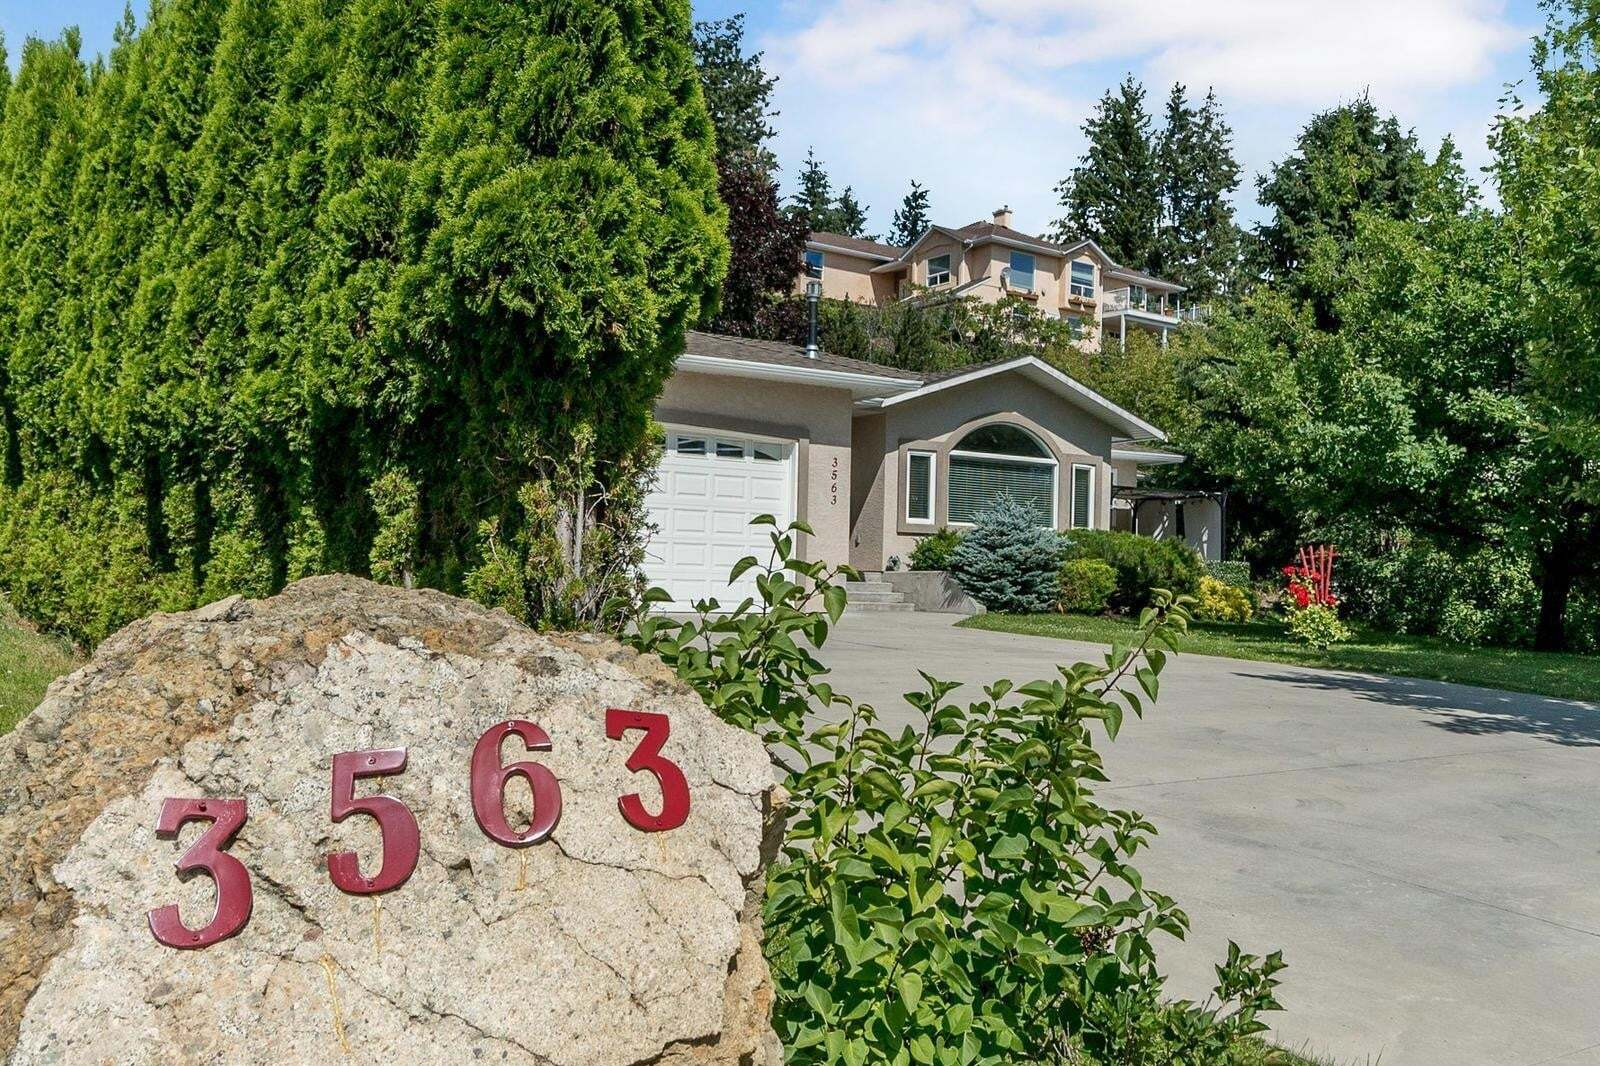 House for sale at 3563 Glen Eagles Ct West Kelowna British Columbia - MLS: 10210390